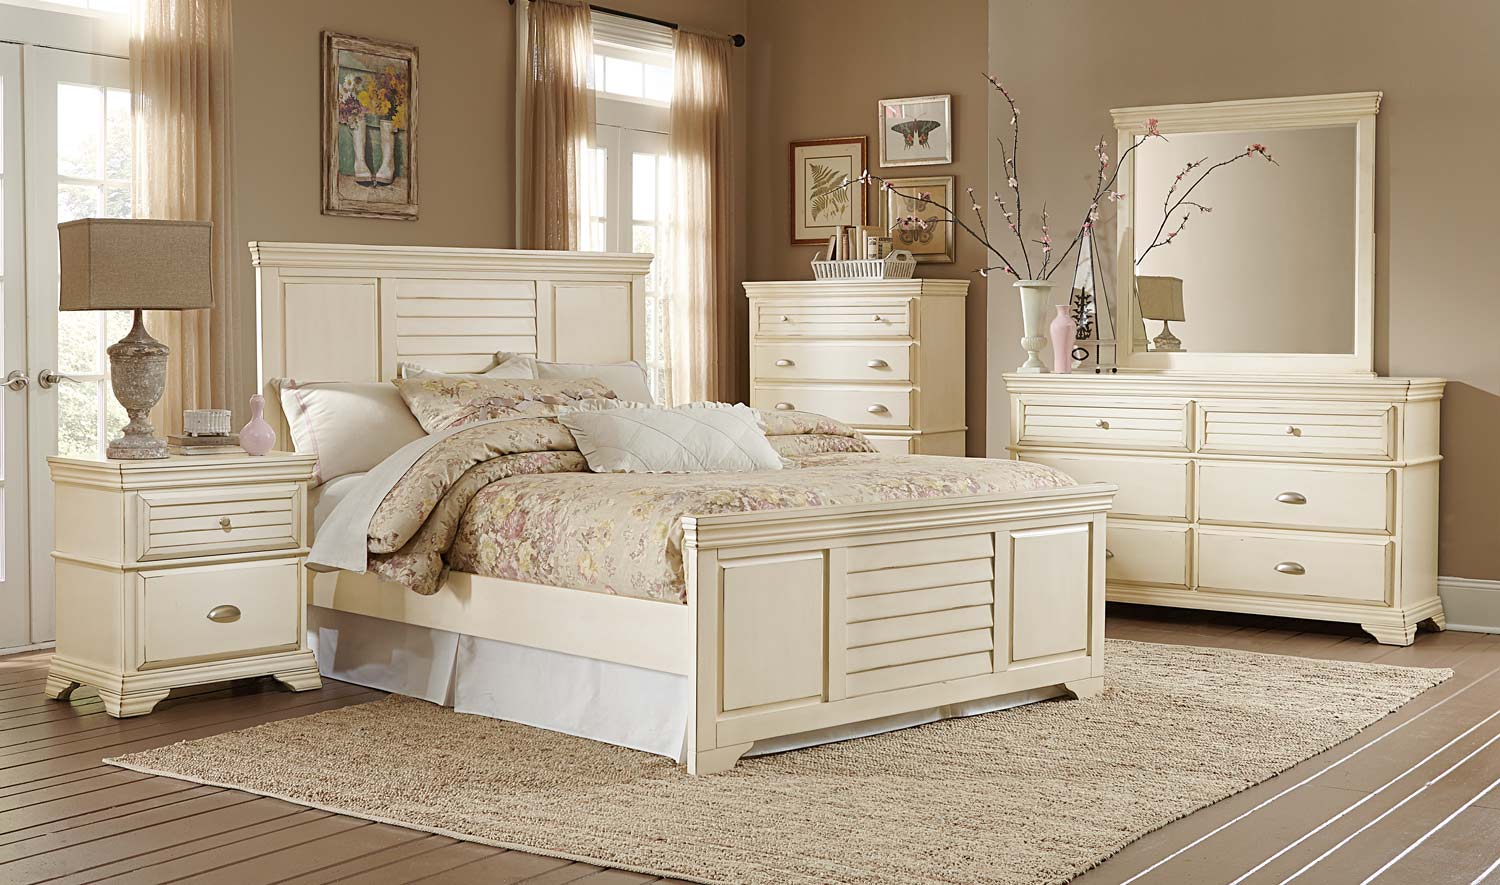 Homelegance Laurinda Bedroom Set Antique White 1846 BEDROOM SET